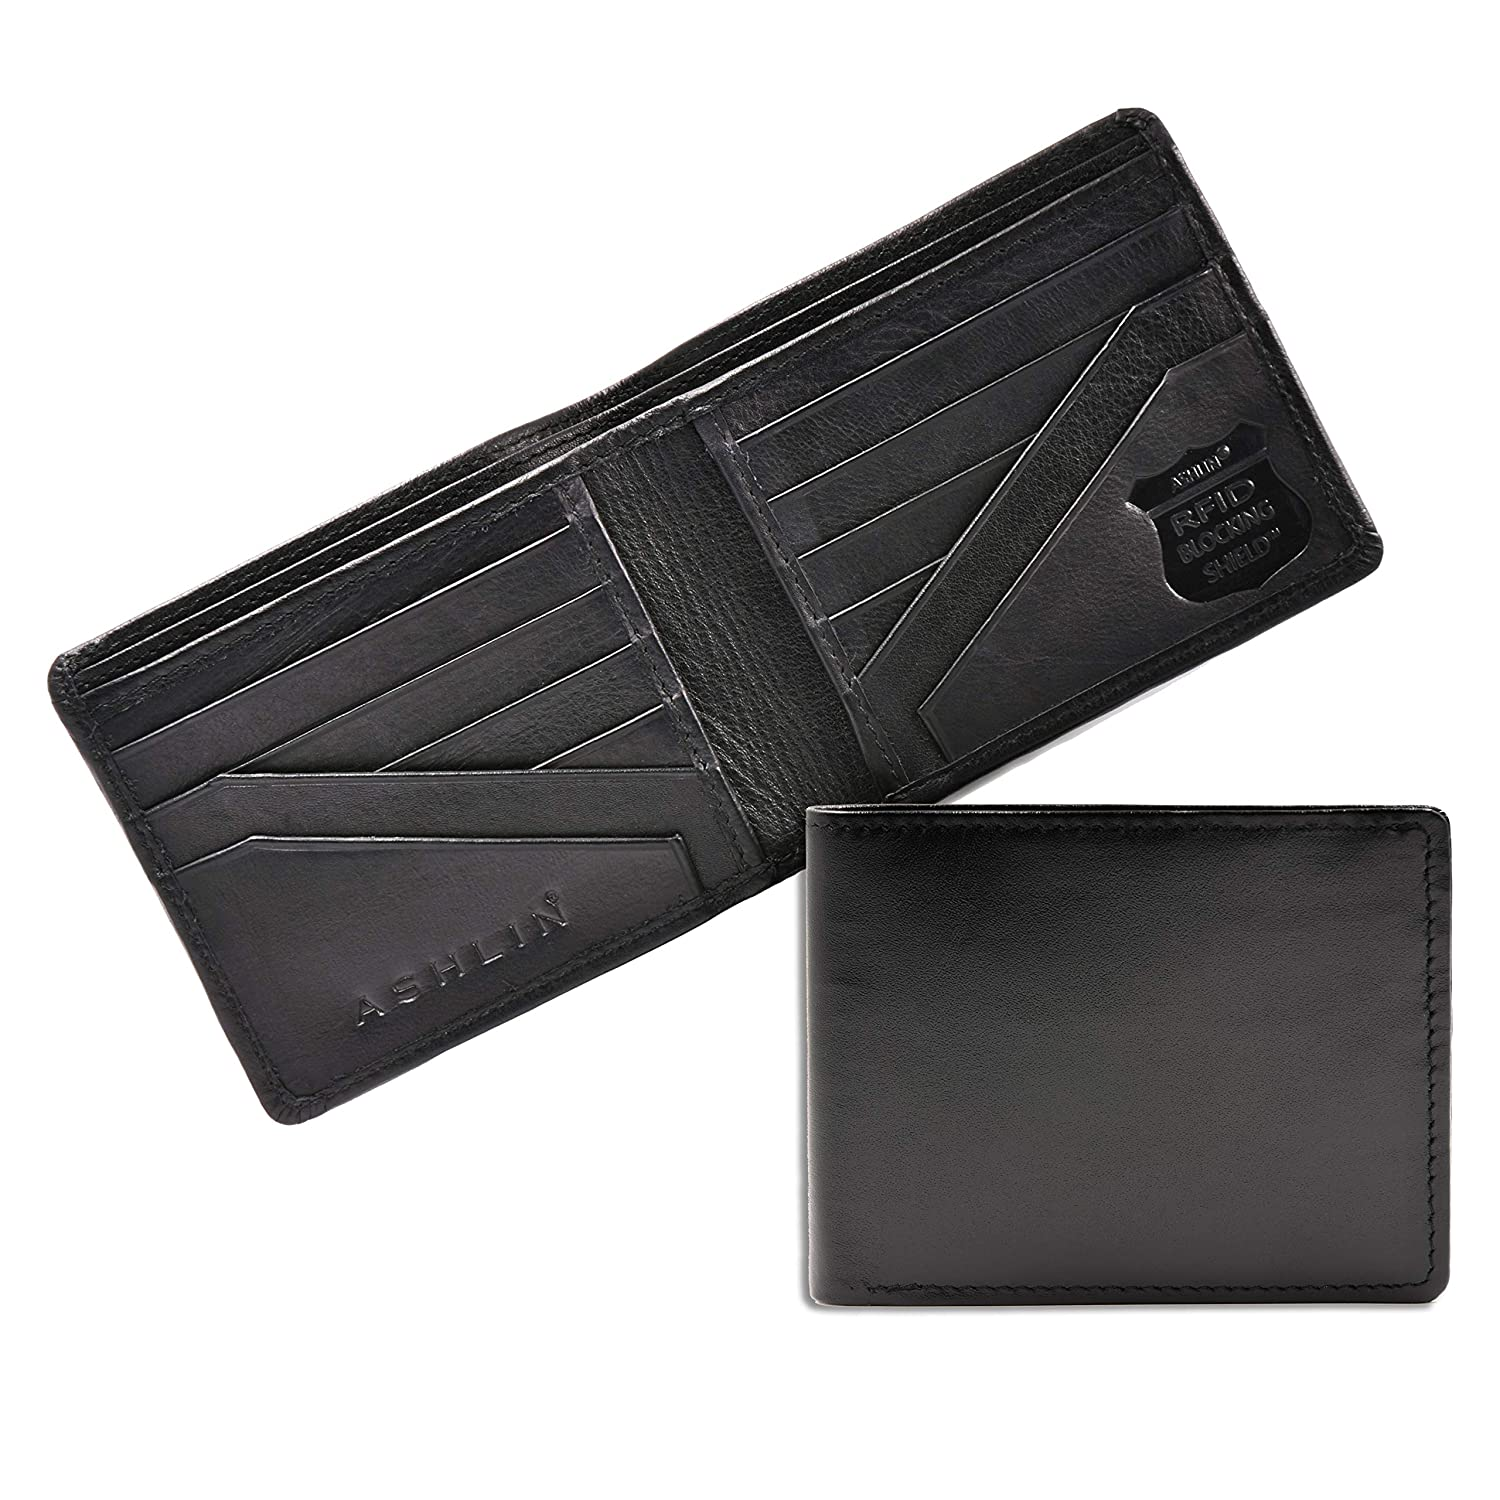 72f6fd1e72bf ASHLIN Men's Bifold Wallet - Best RFID Blocking wallet | 100% Tuscany  Leather (RFID7728-18-01): Amazon.ca: Luggage & Bags